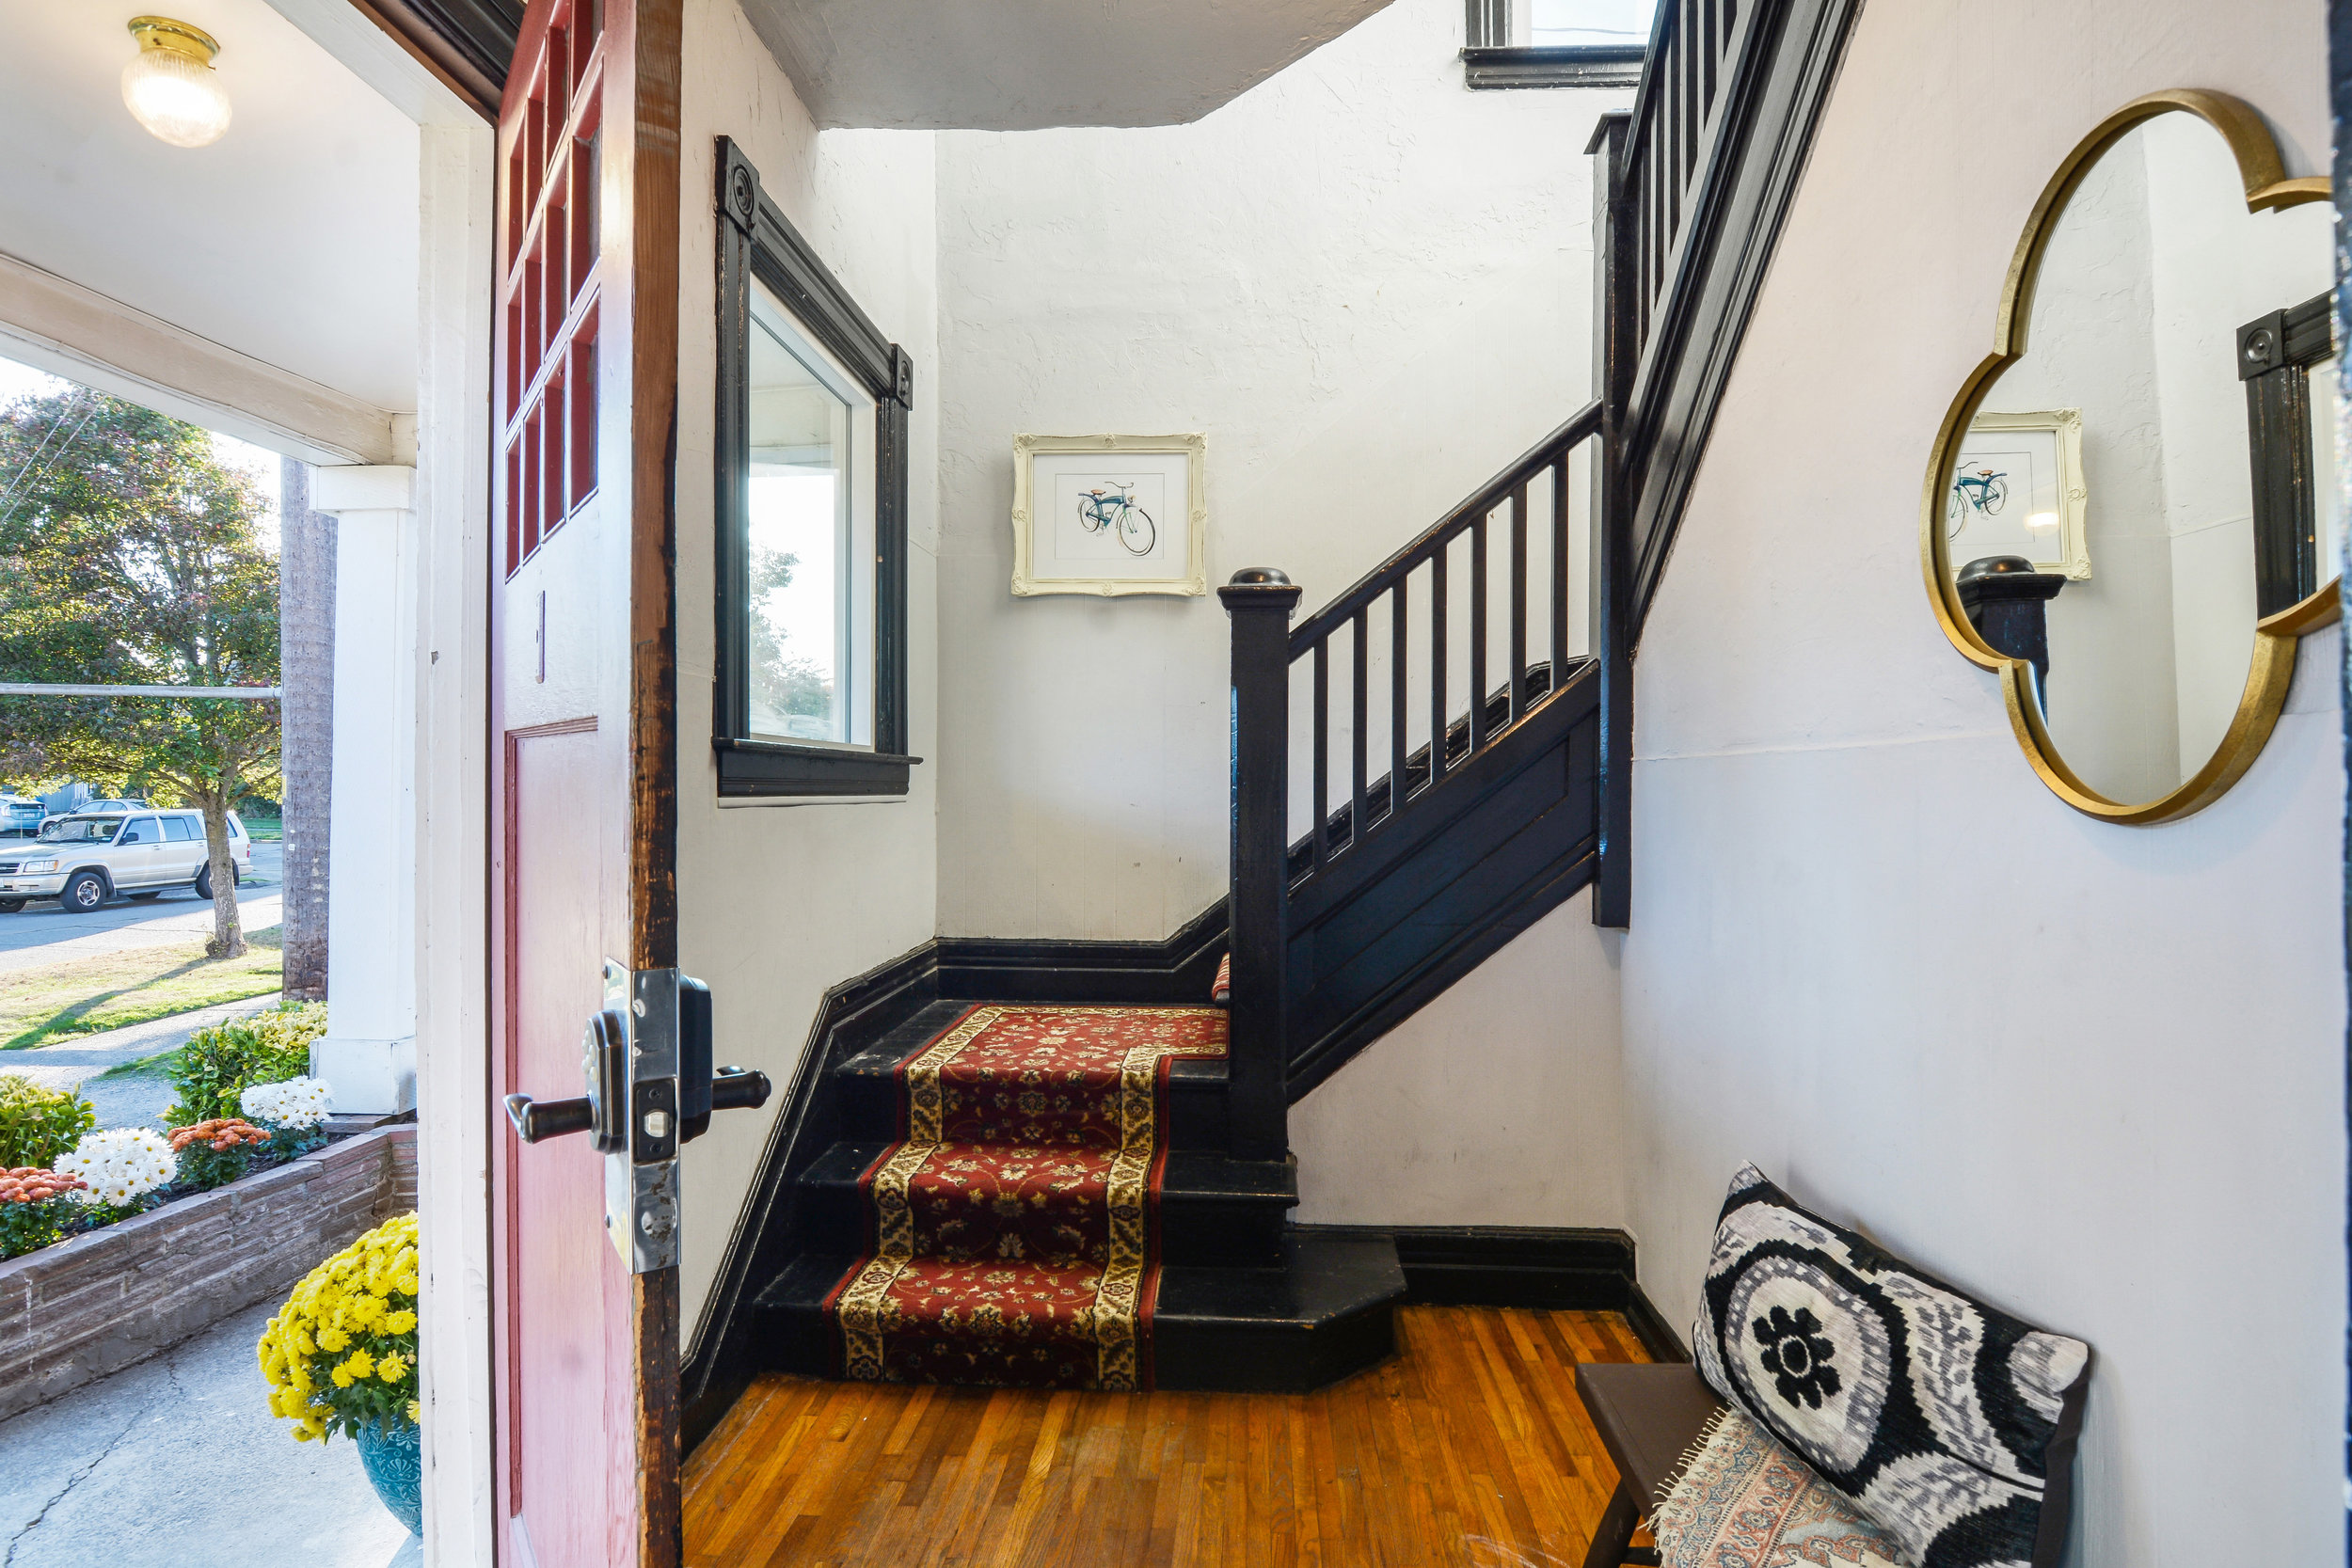 From the front porch step into the shared entry space with its hardwood floors, open staircase, and high ceilings.